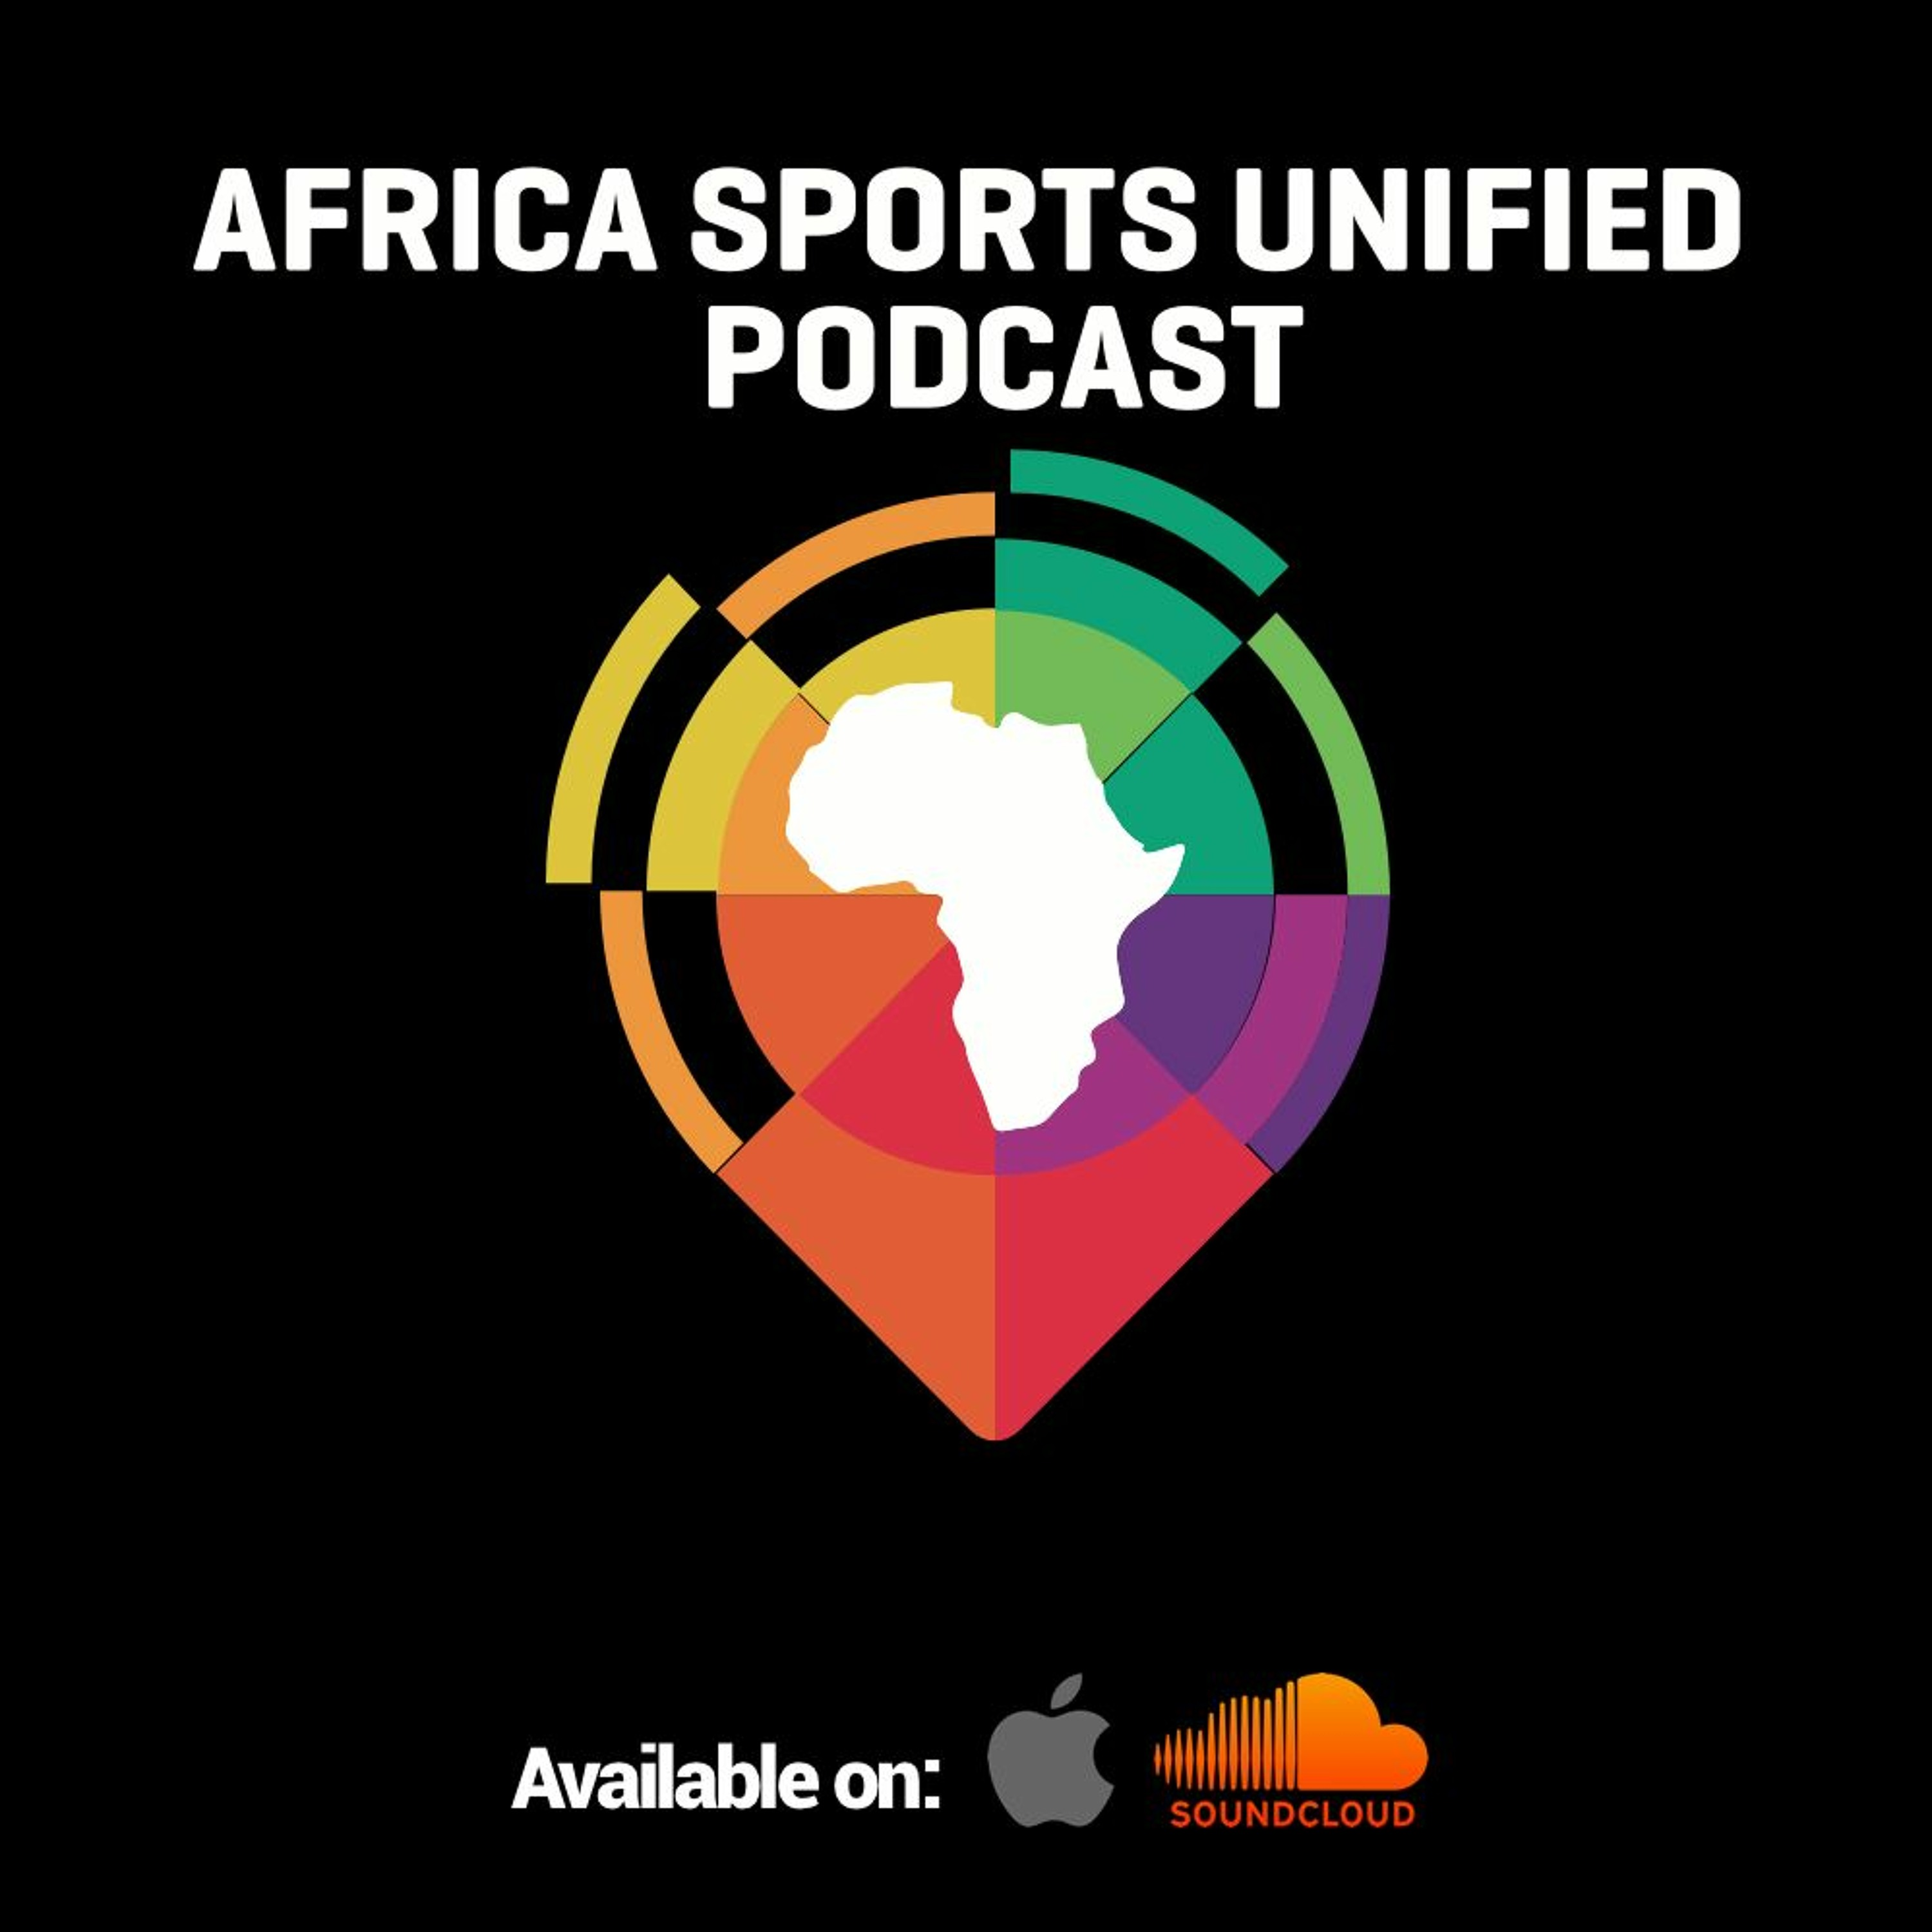 ASU # 6: The Diaspora's View on The Youth Olympic Games